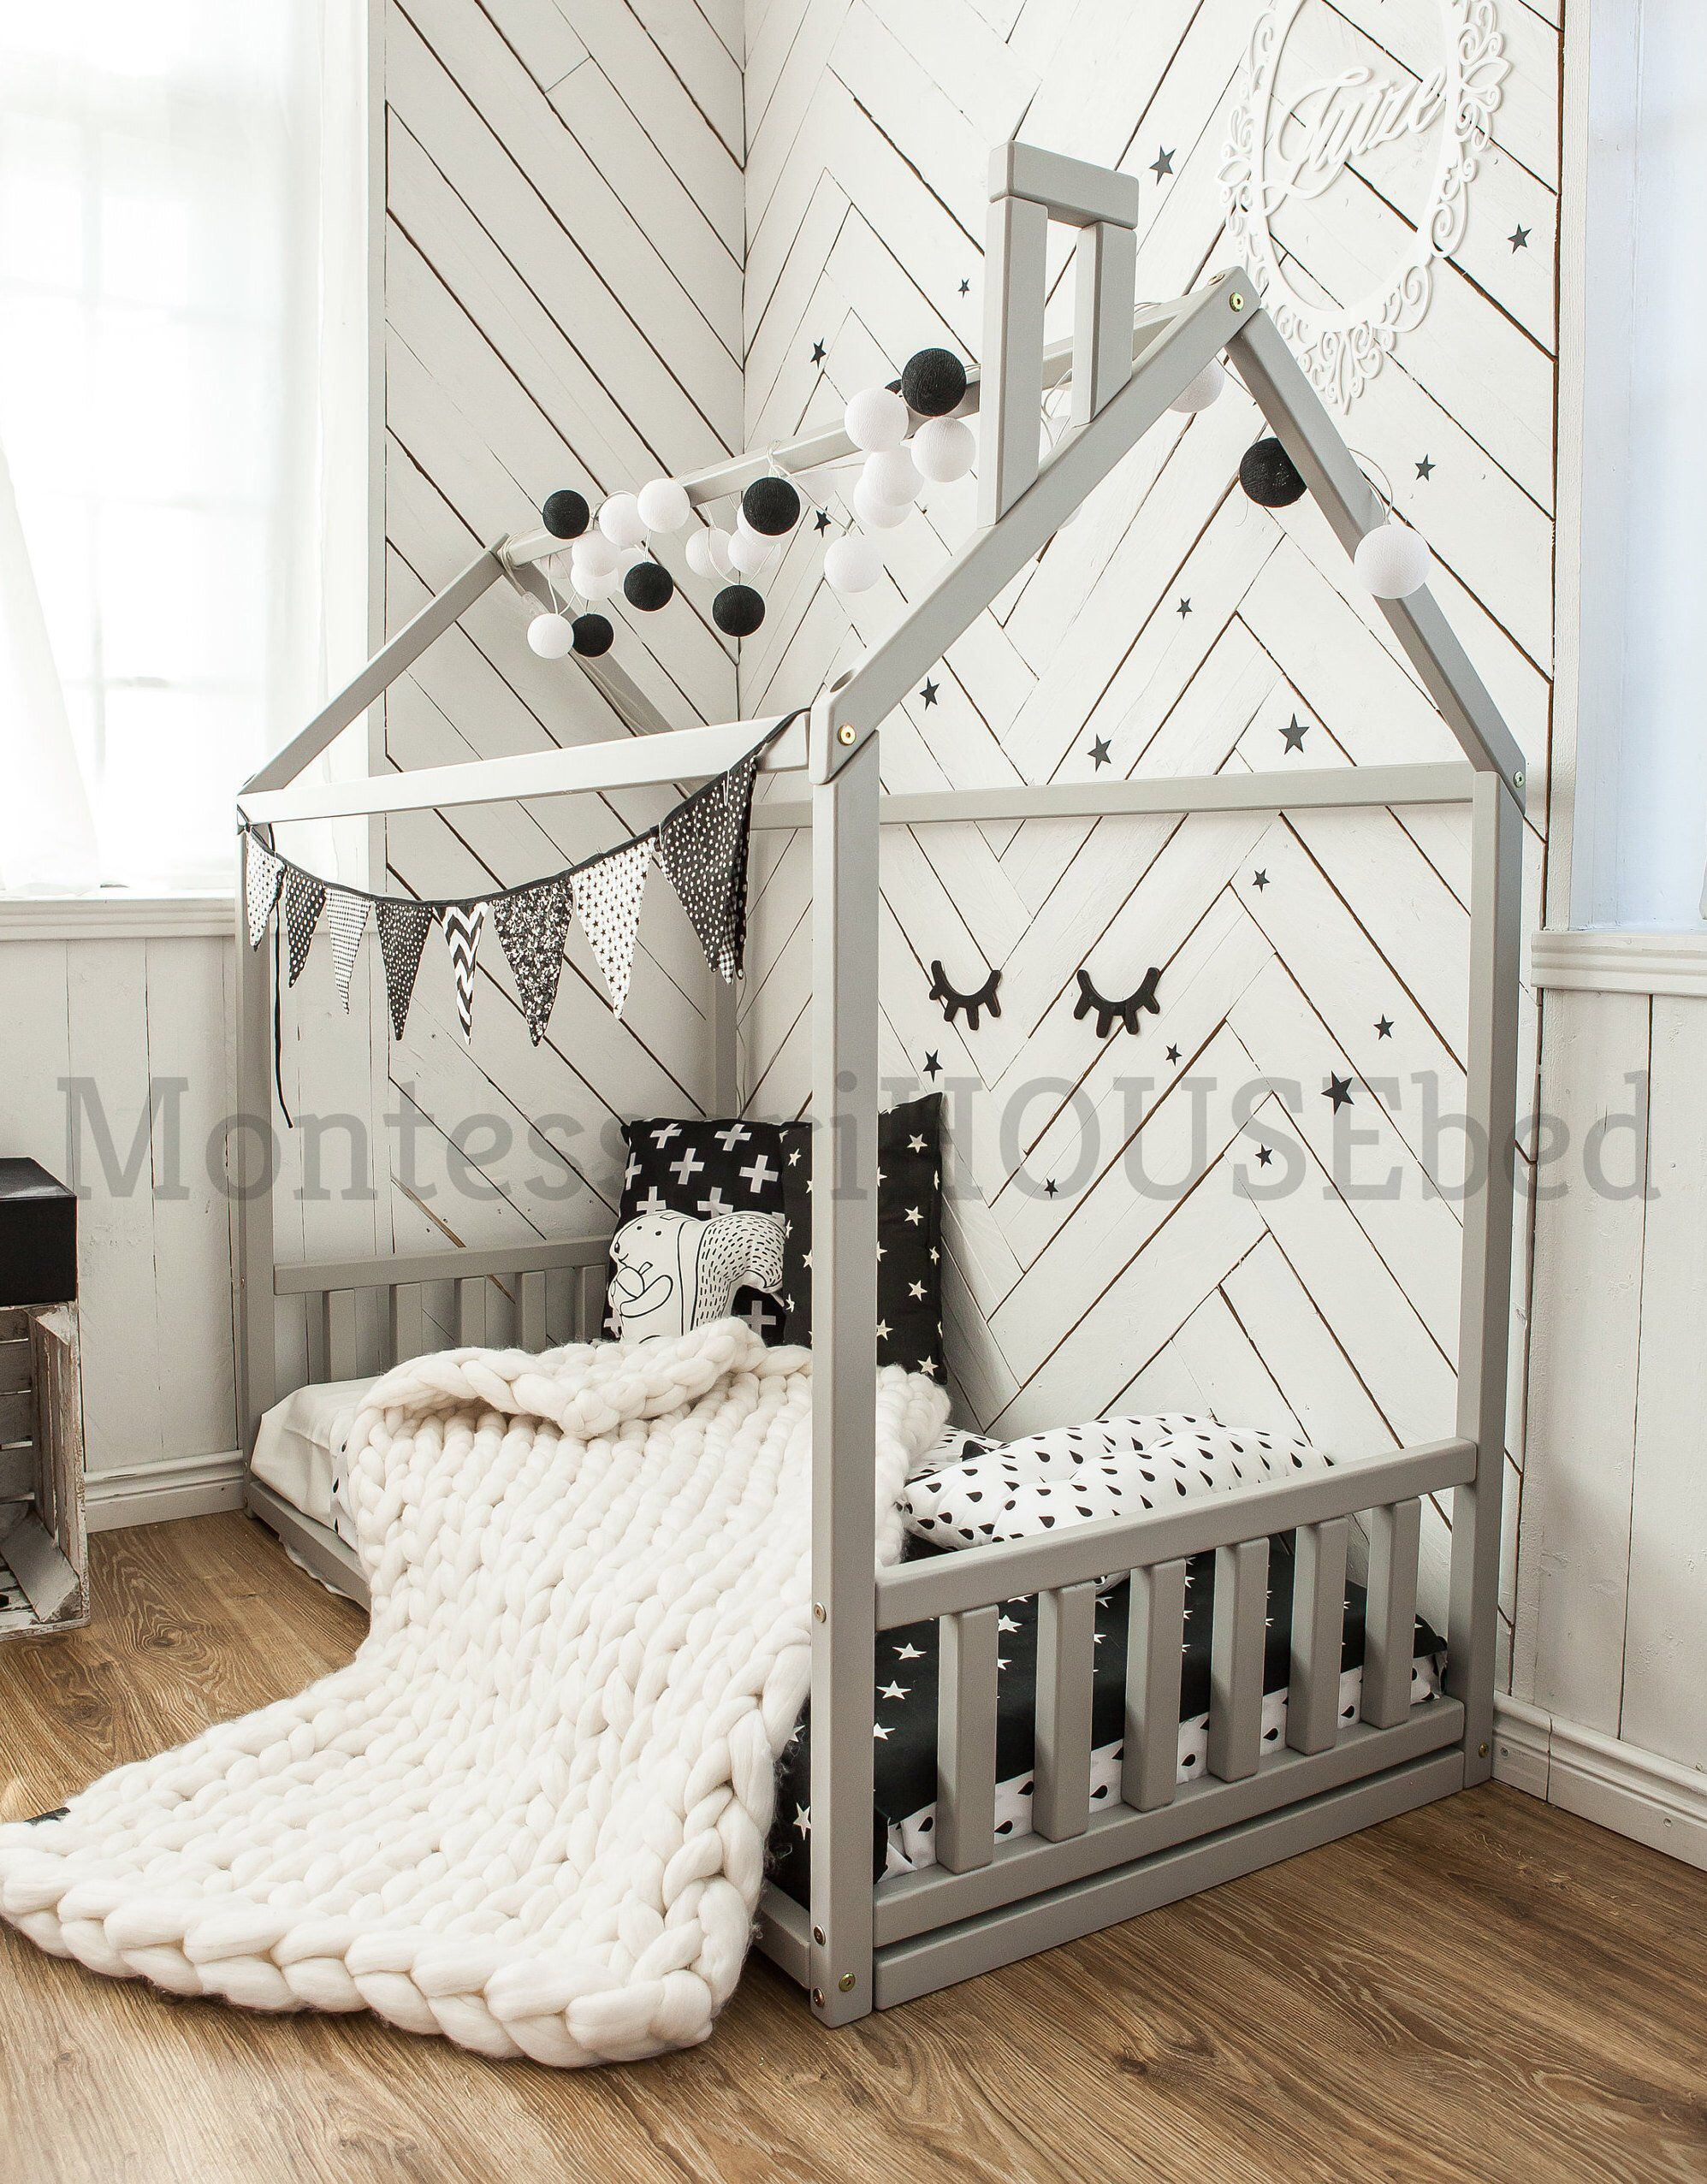 Toddler House Bed Frame With Slats Montessori Bed Teepee Etsy Kids Bed Design Toddler House Bed House Frame Bed